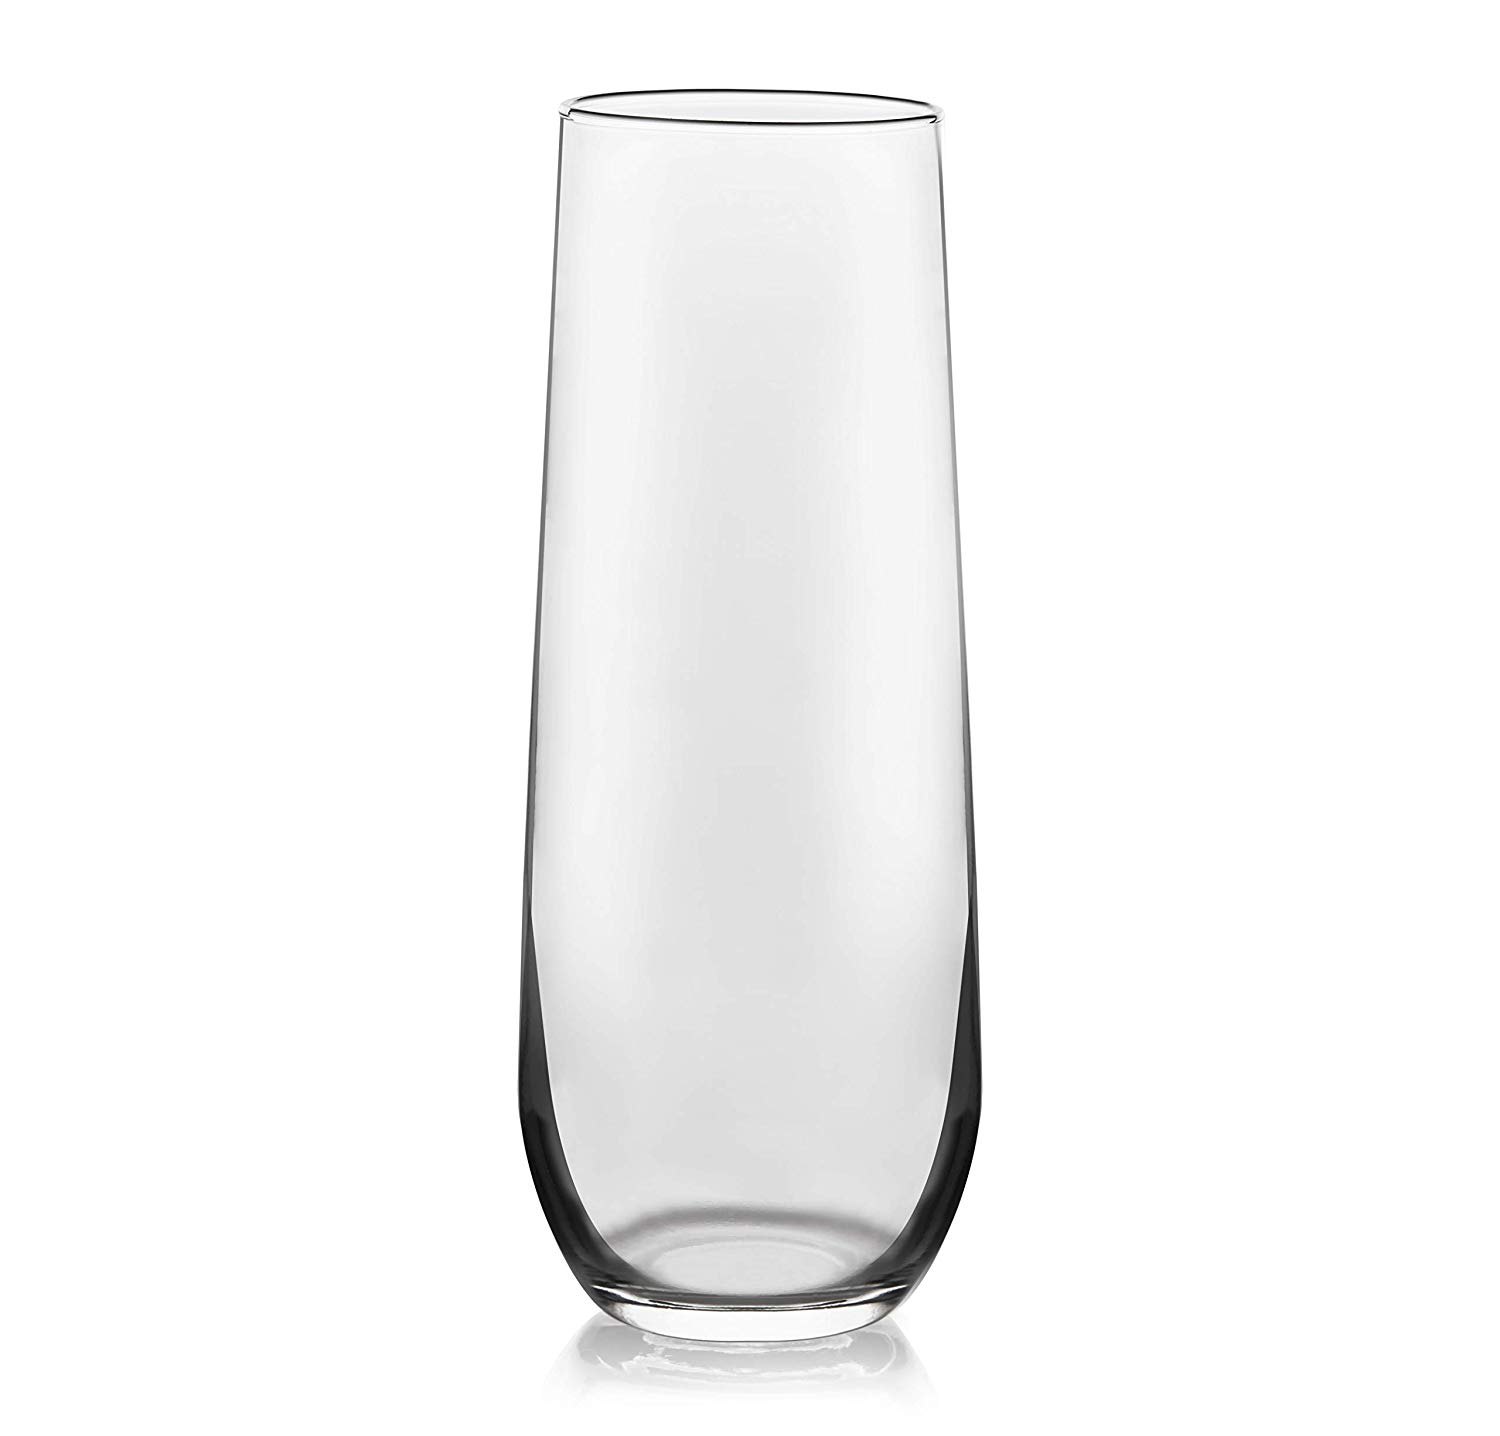 Libbey stemless champagne flute glass